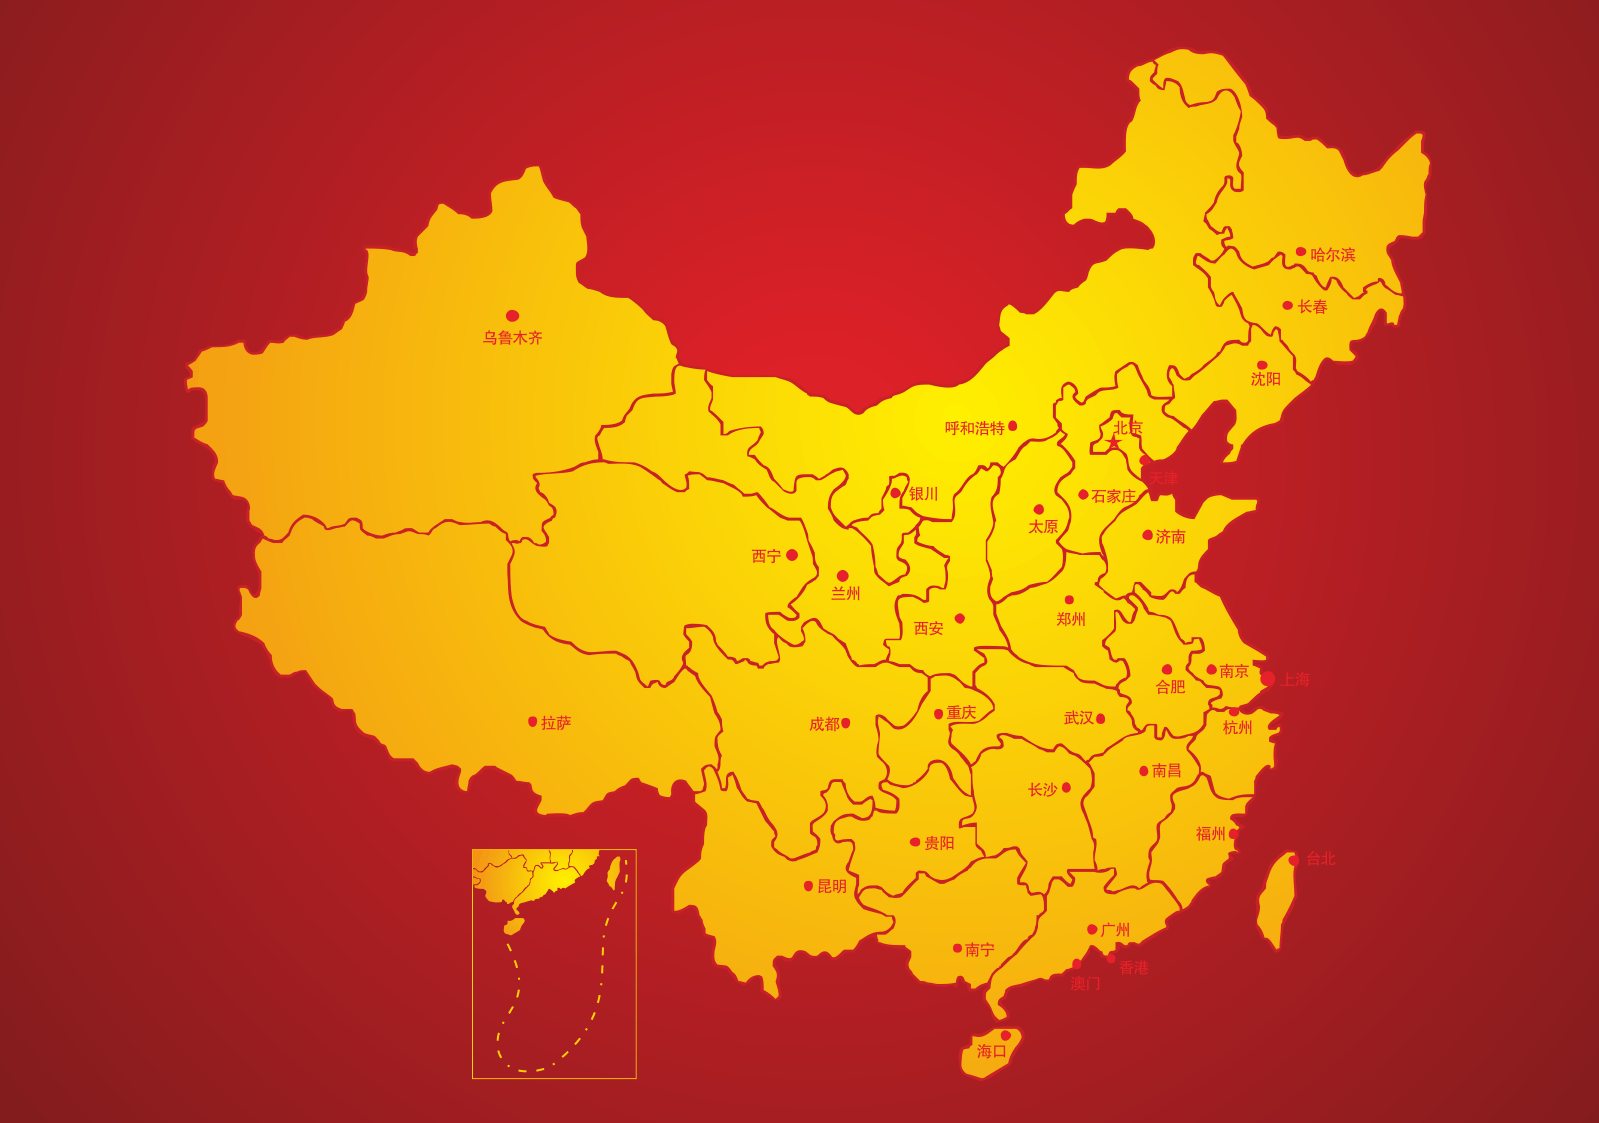 Map of China CorelDRAW Vectors CDR Free Download